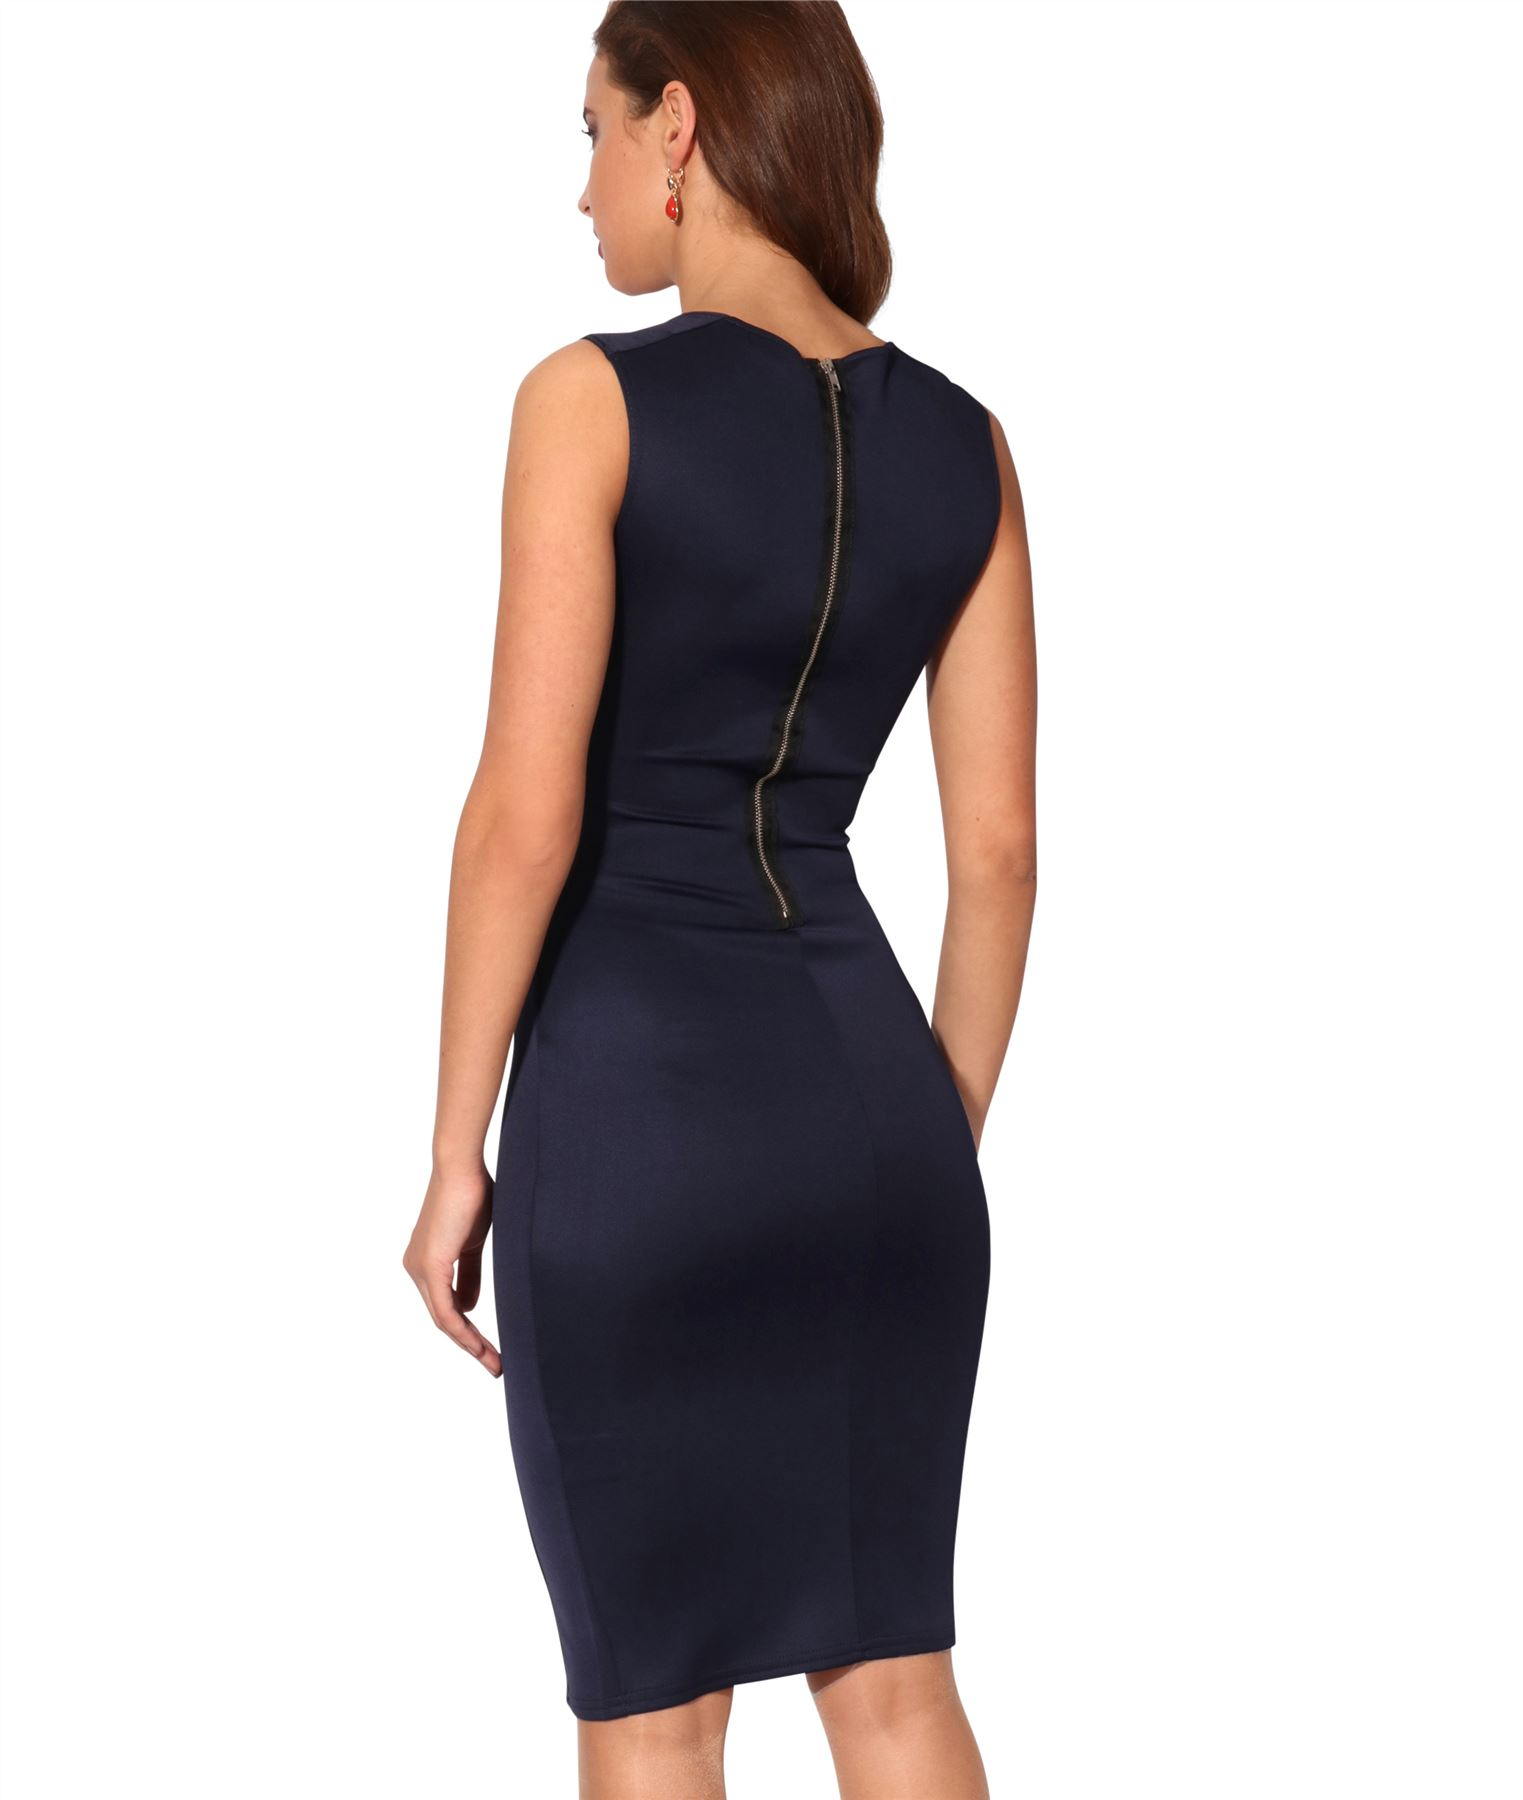 Womens-Pencil-Midi-Bodycon-Dress-Square-Neck-Panelled-Sexy-Zip-Party-Evening thumbnail 18